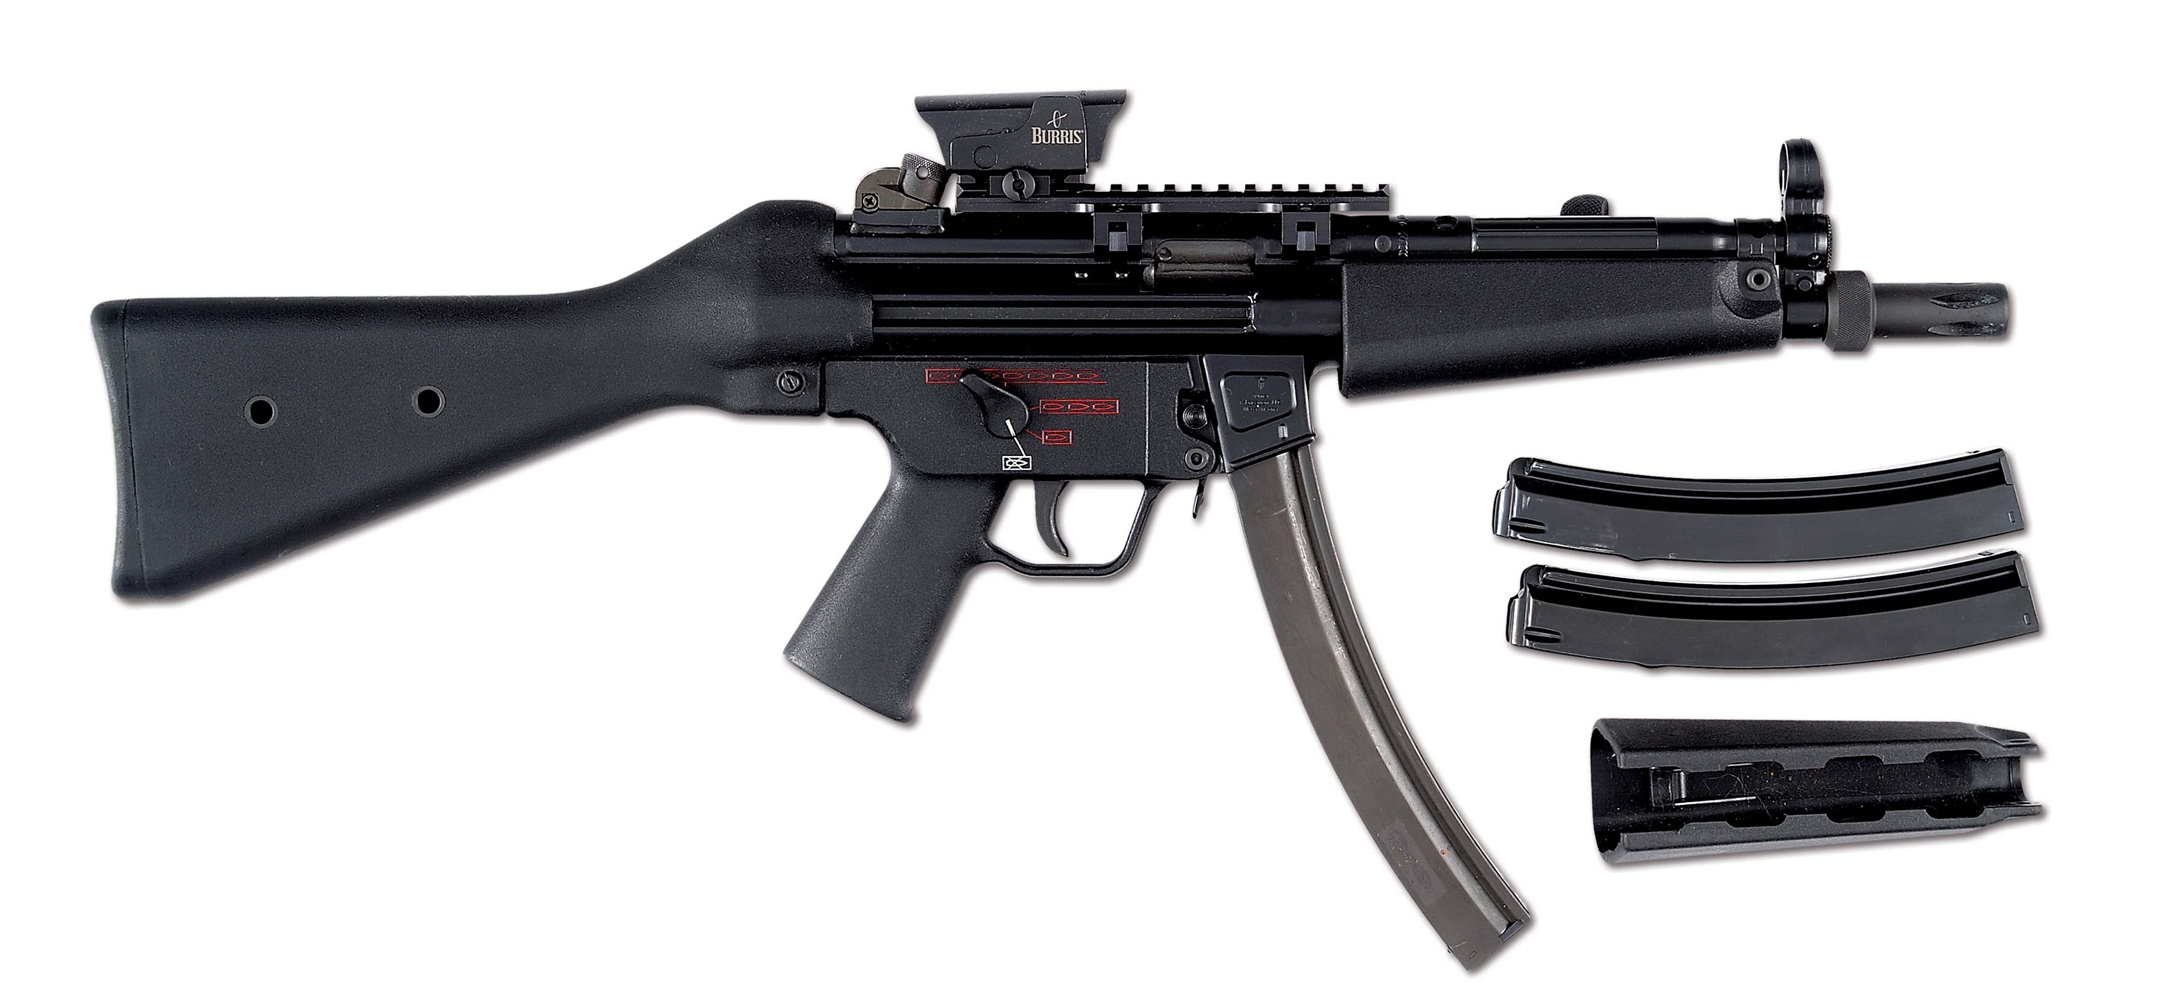 (N) HIGHLY SOUGHT FLEMING REGISTERED H&K AUTO-SEAR PACK REGISTERED IN MULTIPLE CALIBERS ON MP5 HOST GUN (FULLY TRANSFERABLE).